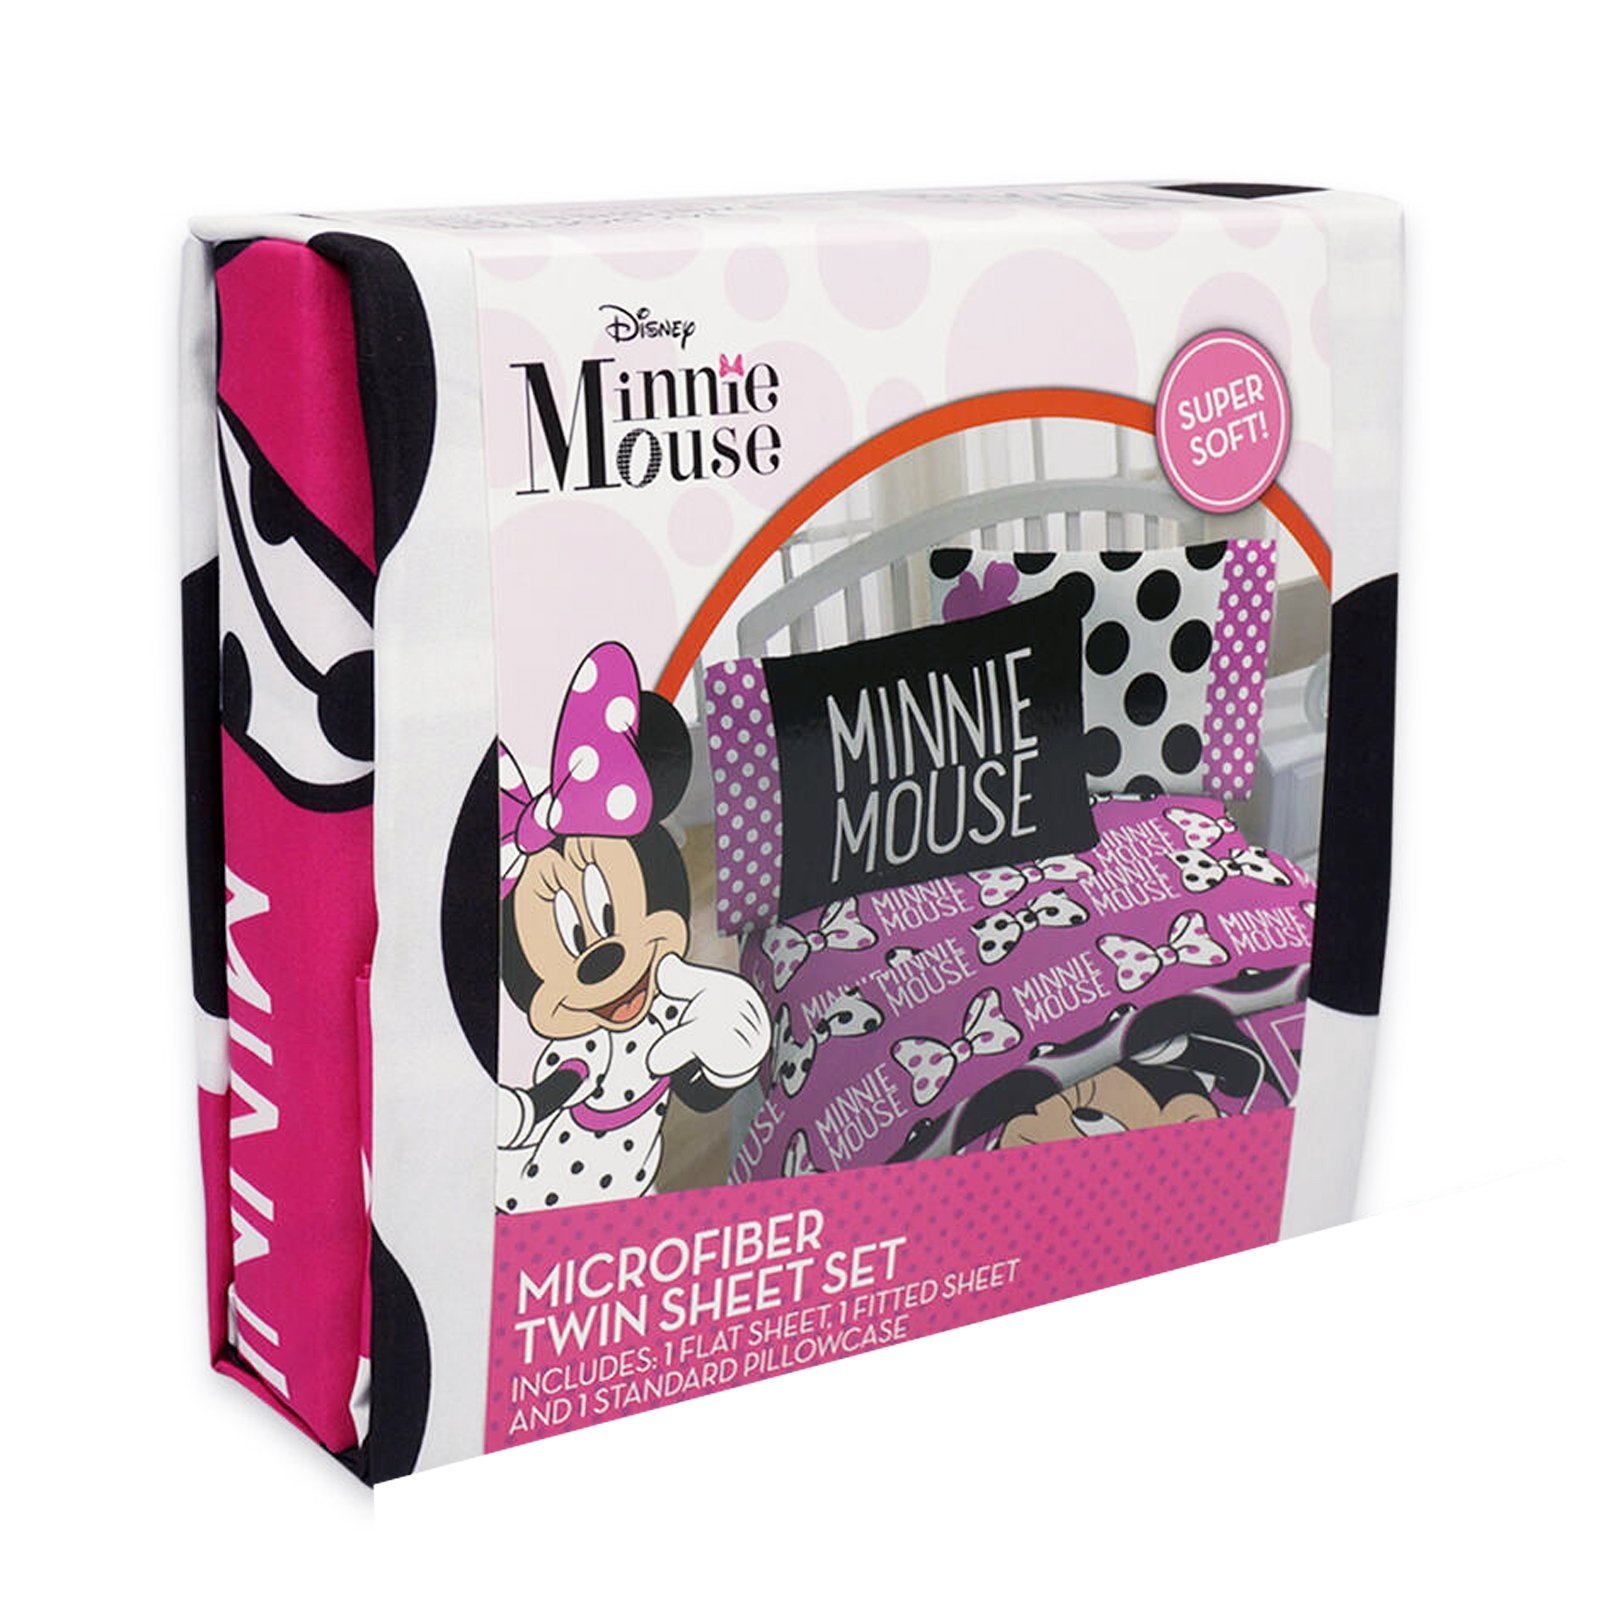 Minnie Mouse Twin Size Sheet Set with Pillow Case